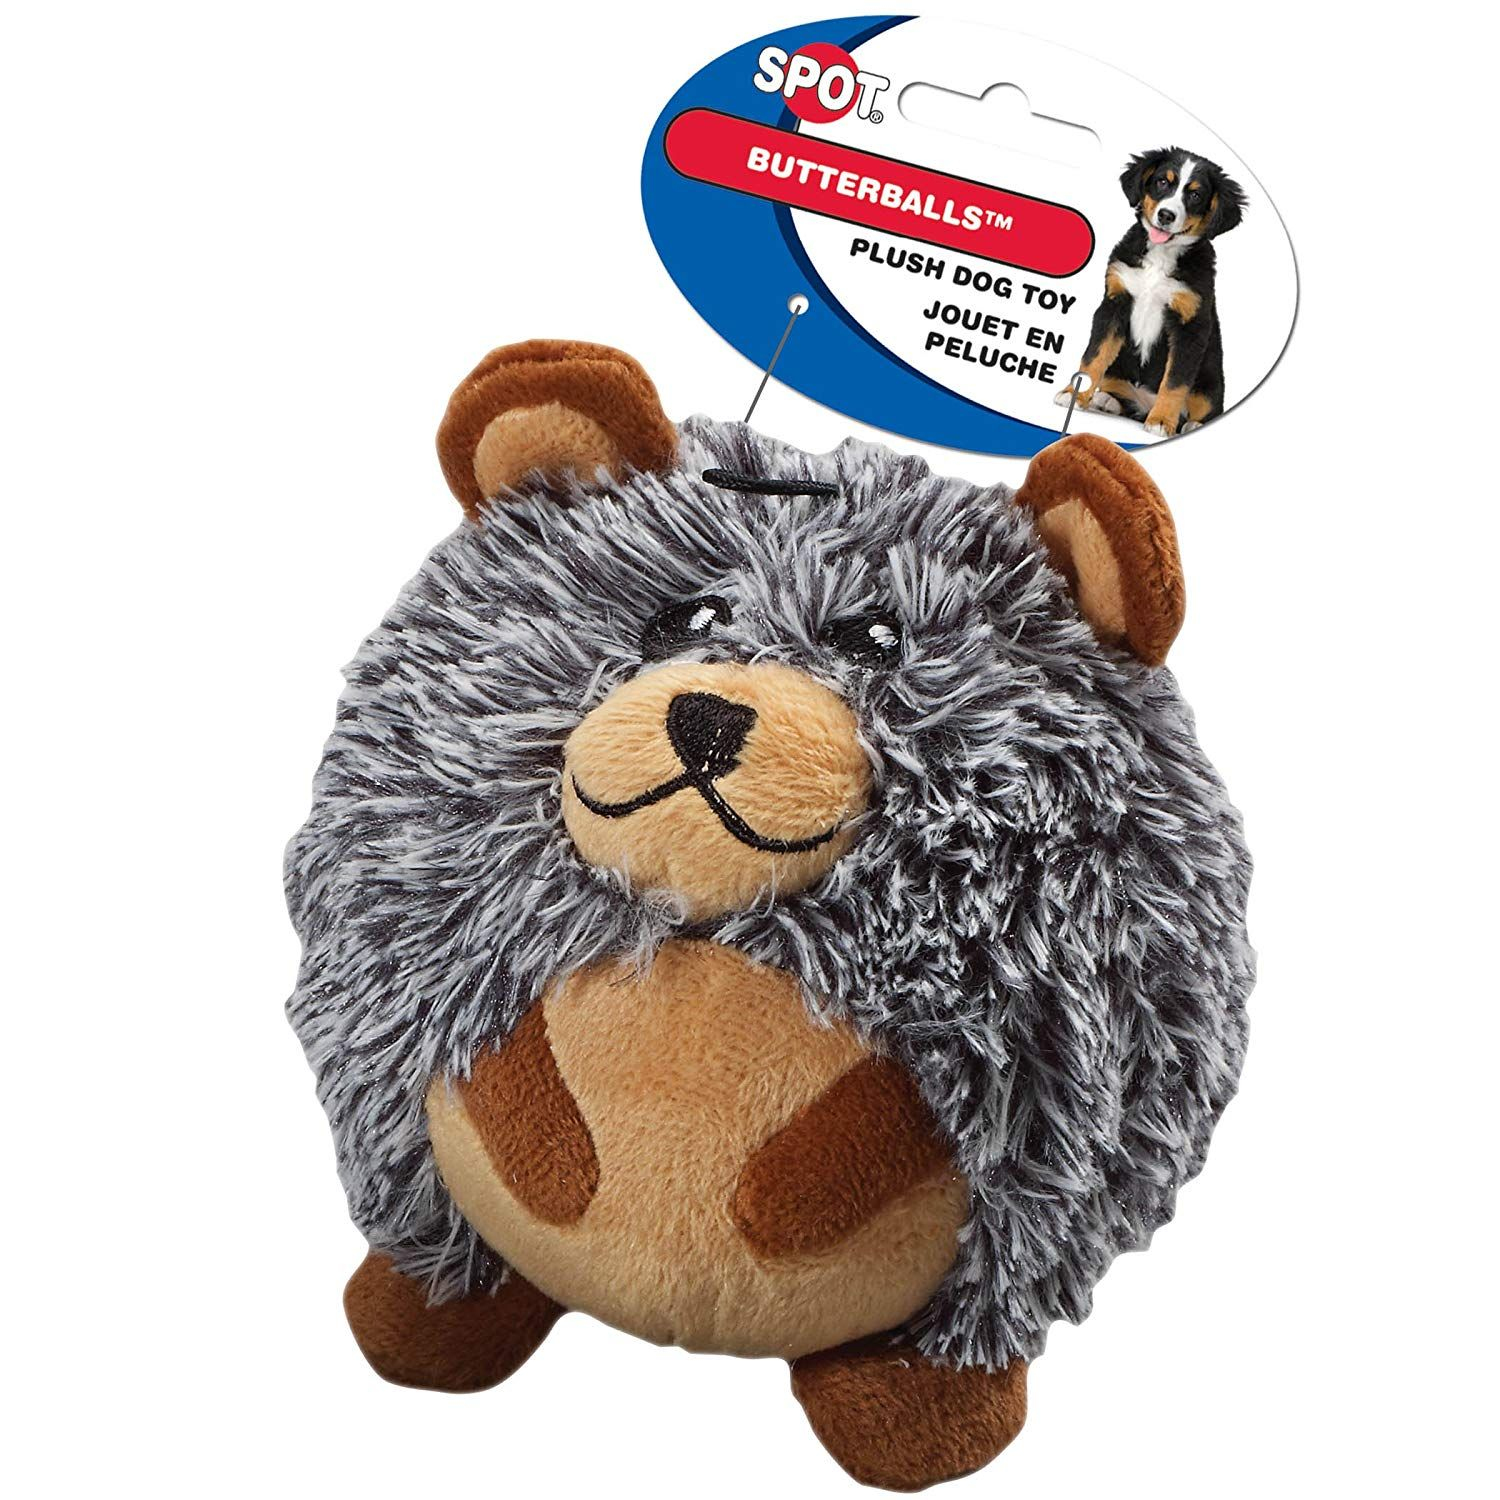 Spot Butterballs Woodland Dog Toy Very Kind Of Your Presence To